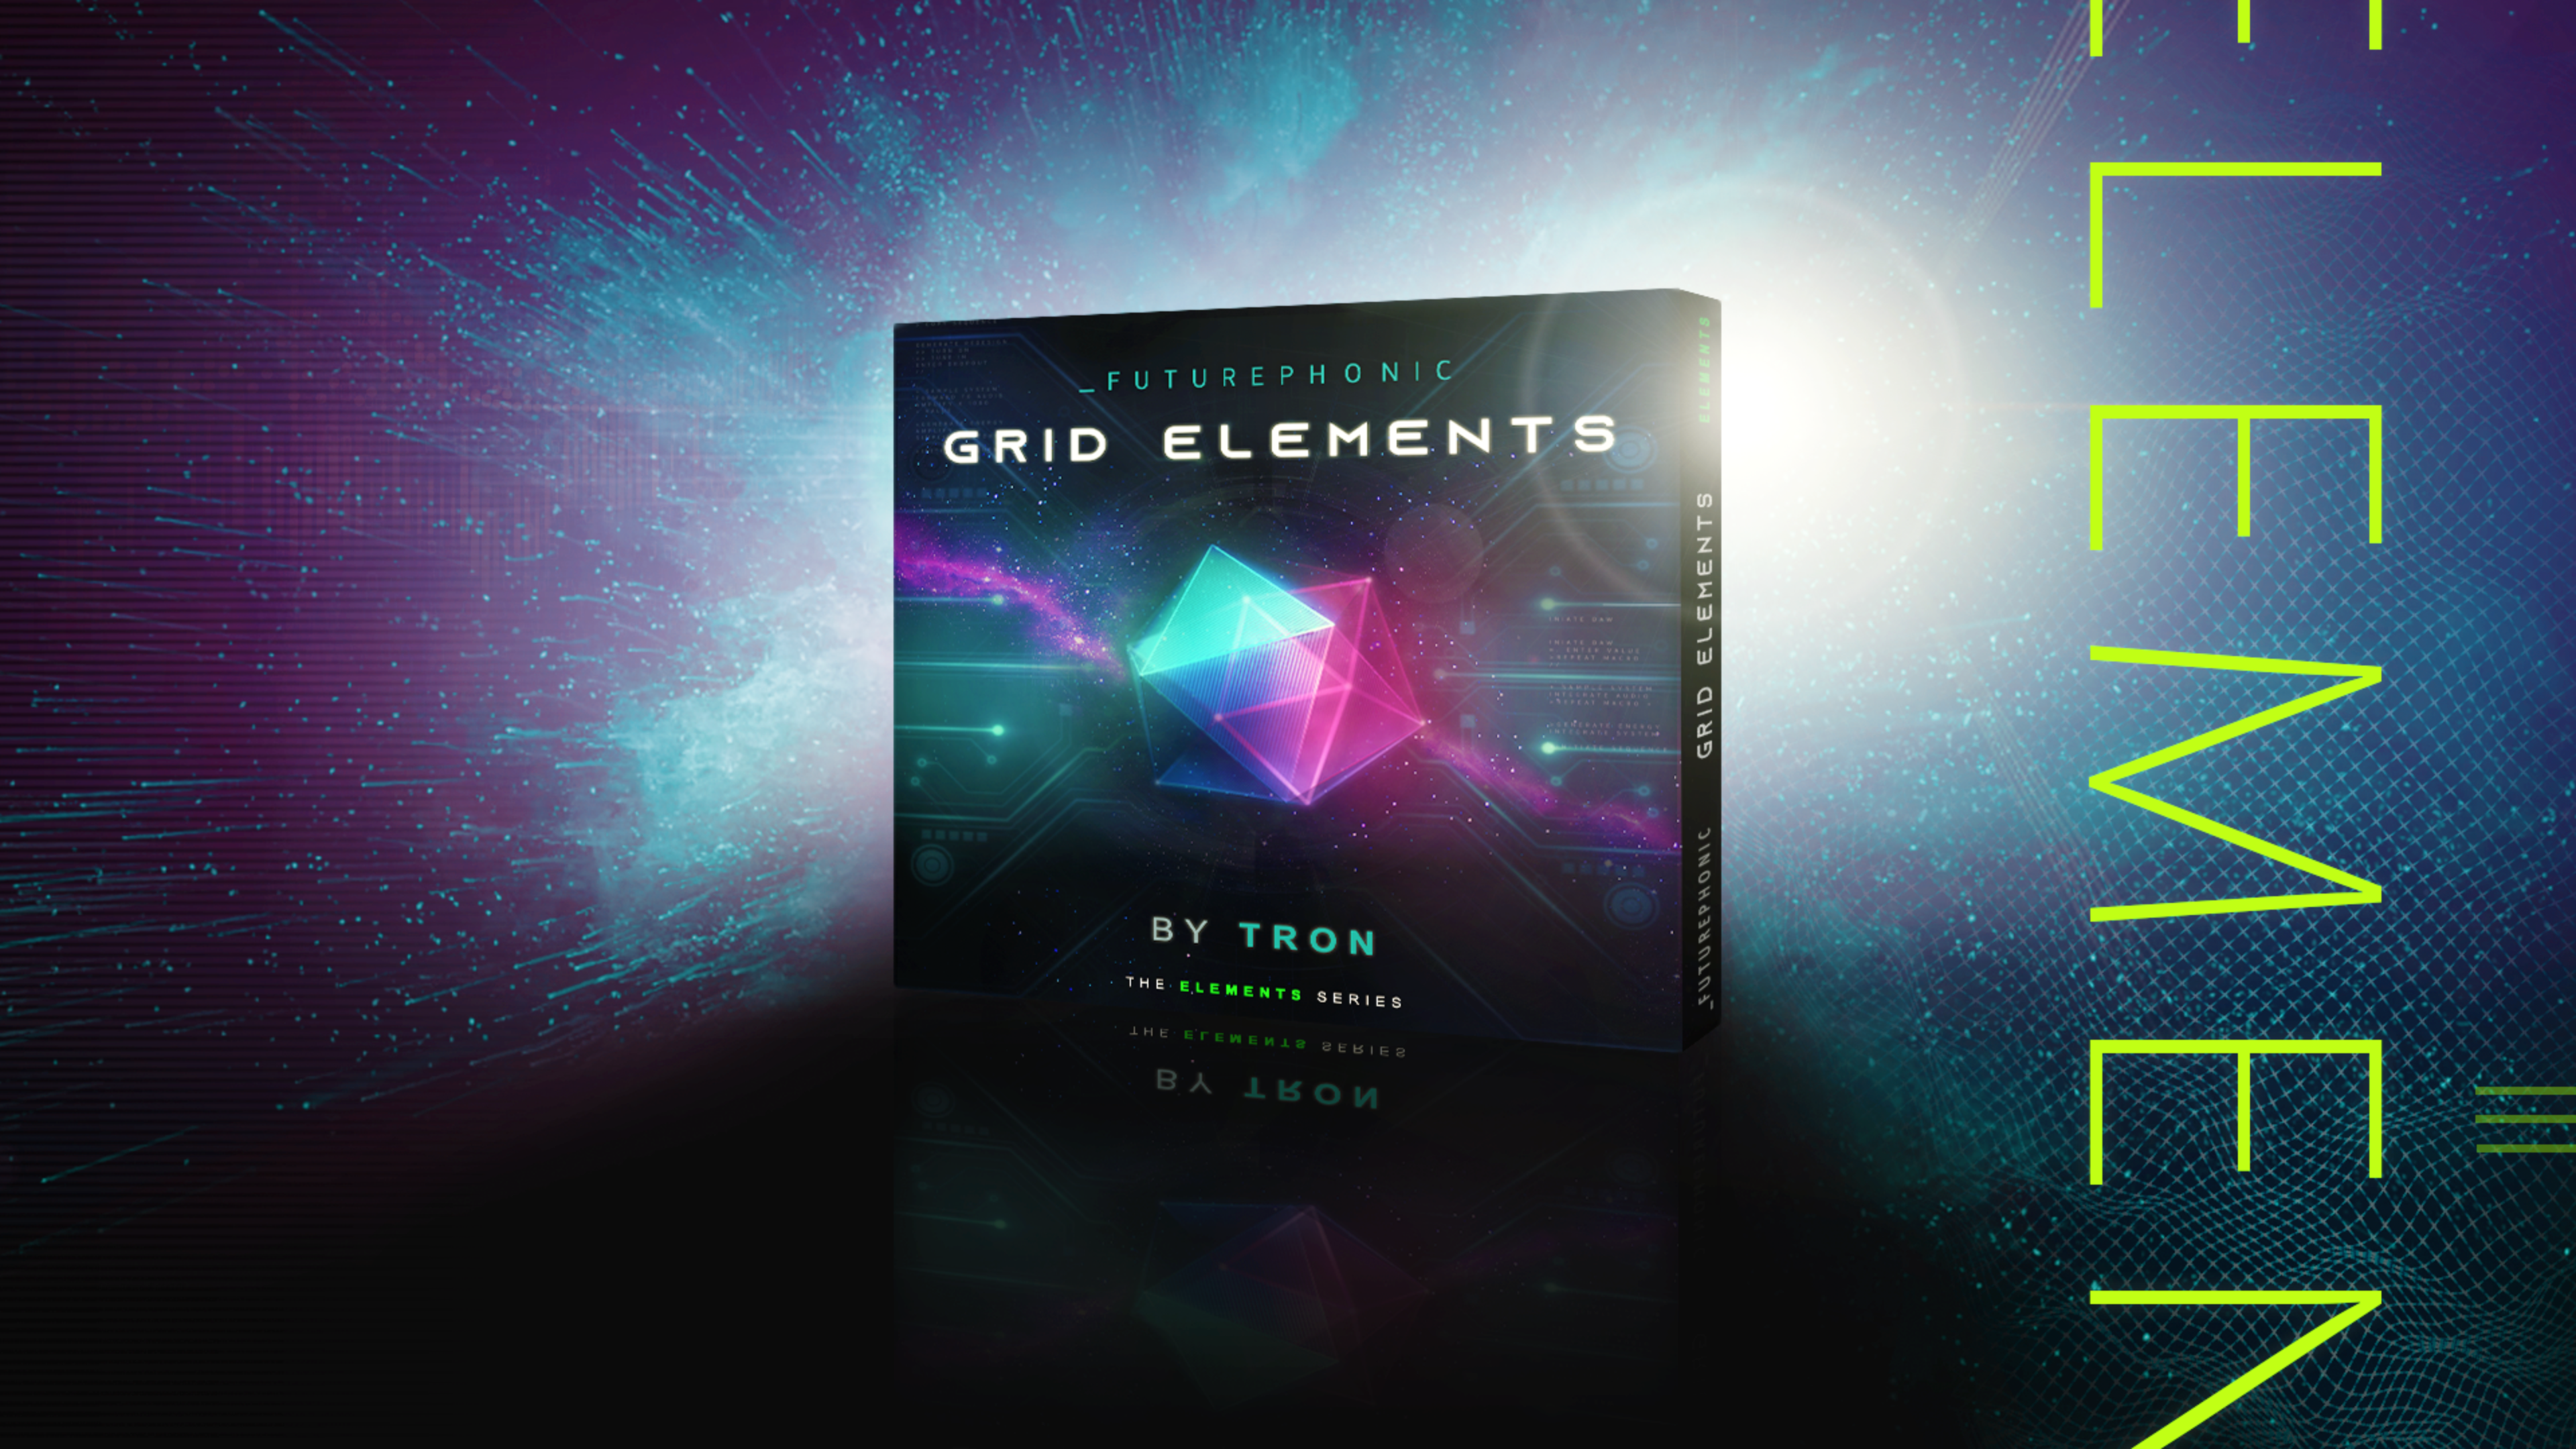 Grid Elements by Tron